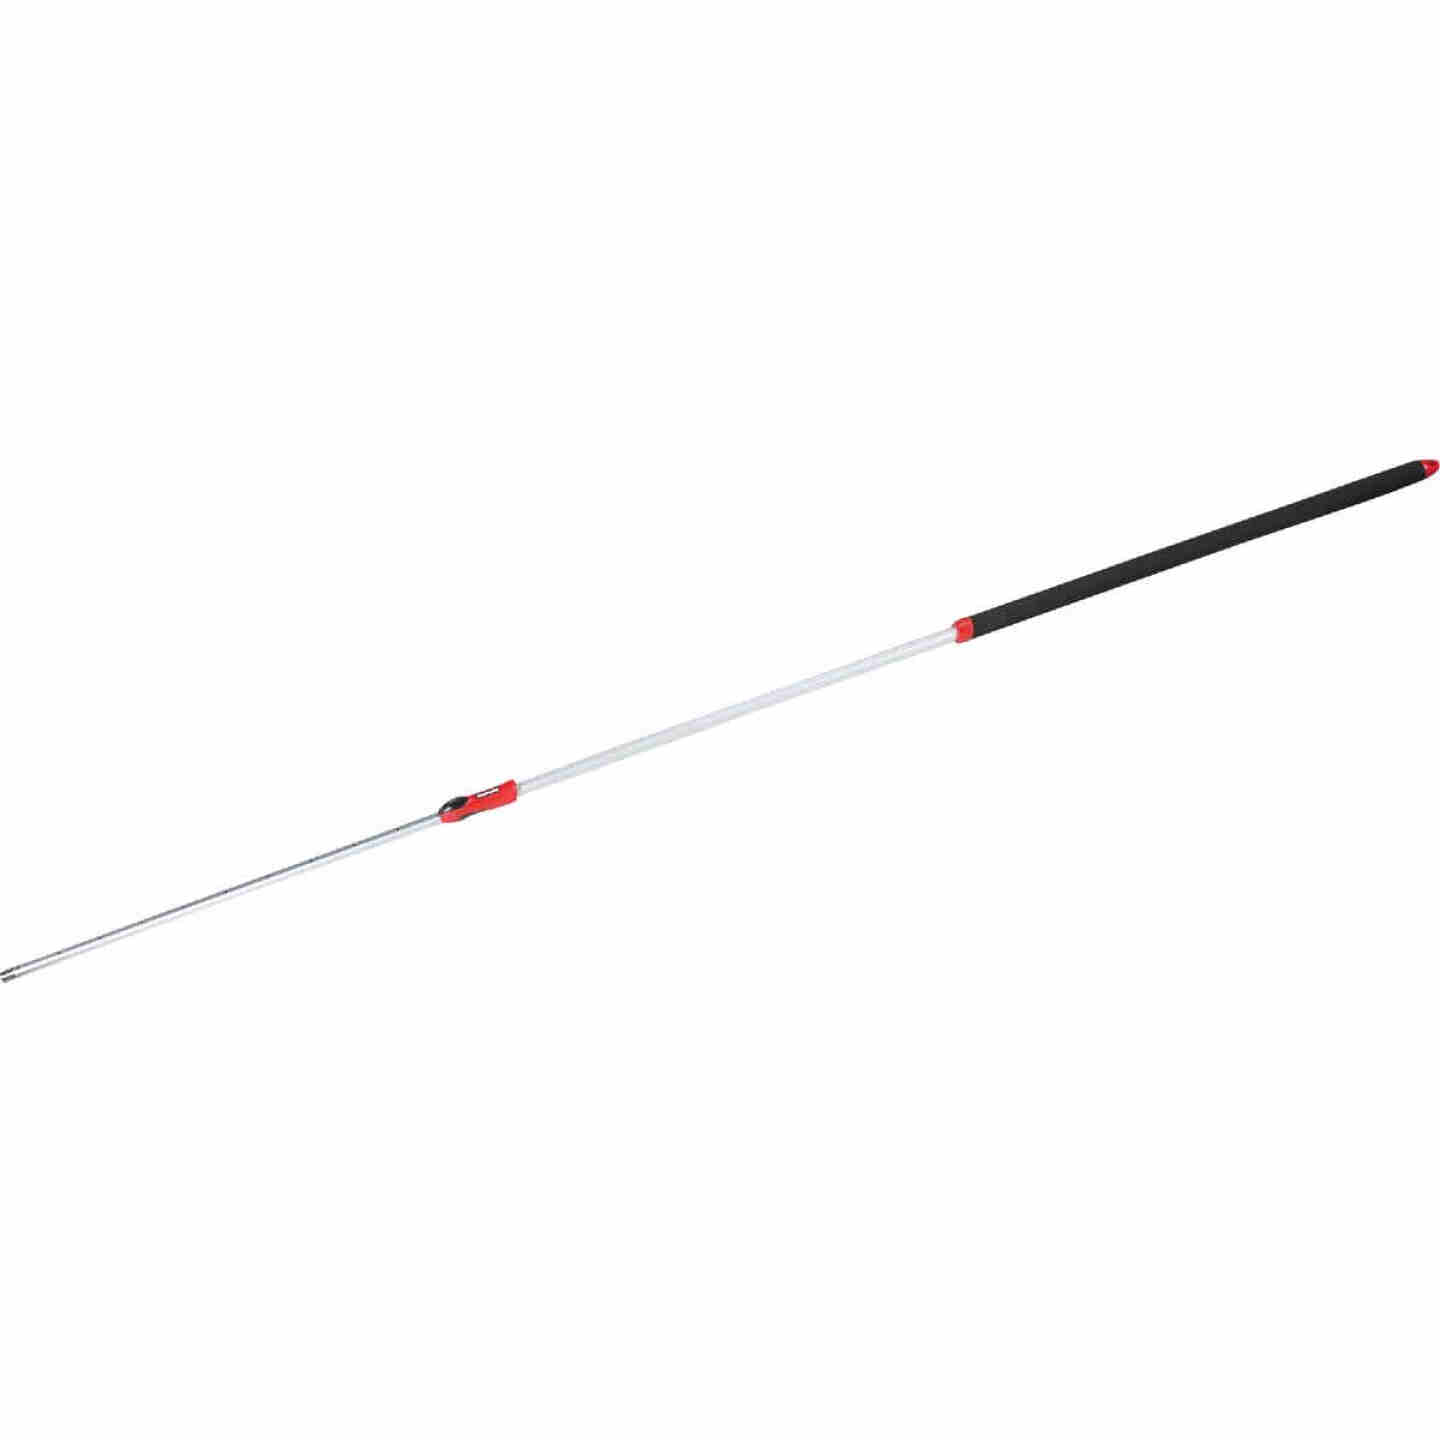 Shur-Line 48 In. to 108 In. Metal, Foam (Handle) Extension Pole Image 4